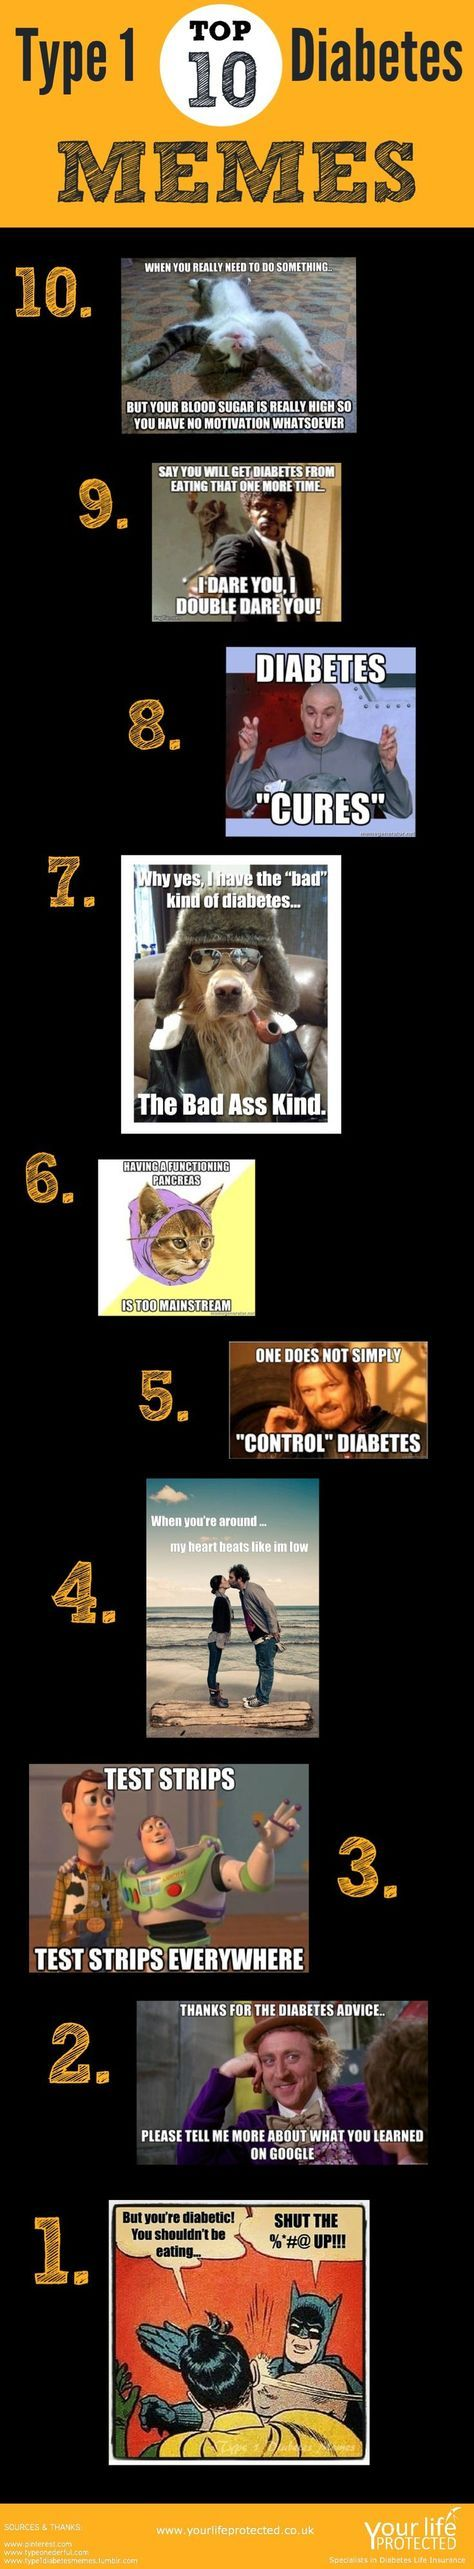 Top 10 Type 1 Diabetes Memes #diabetes #memes I'll share this for my son!! :P: